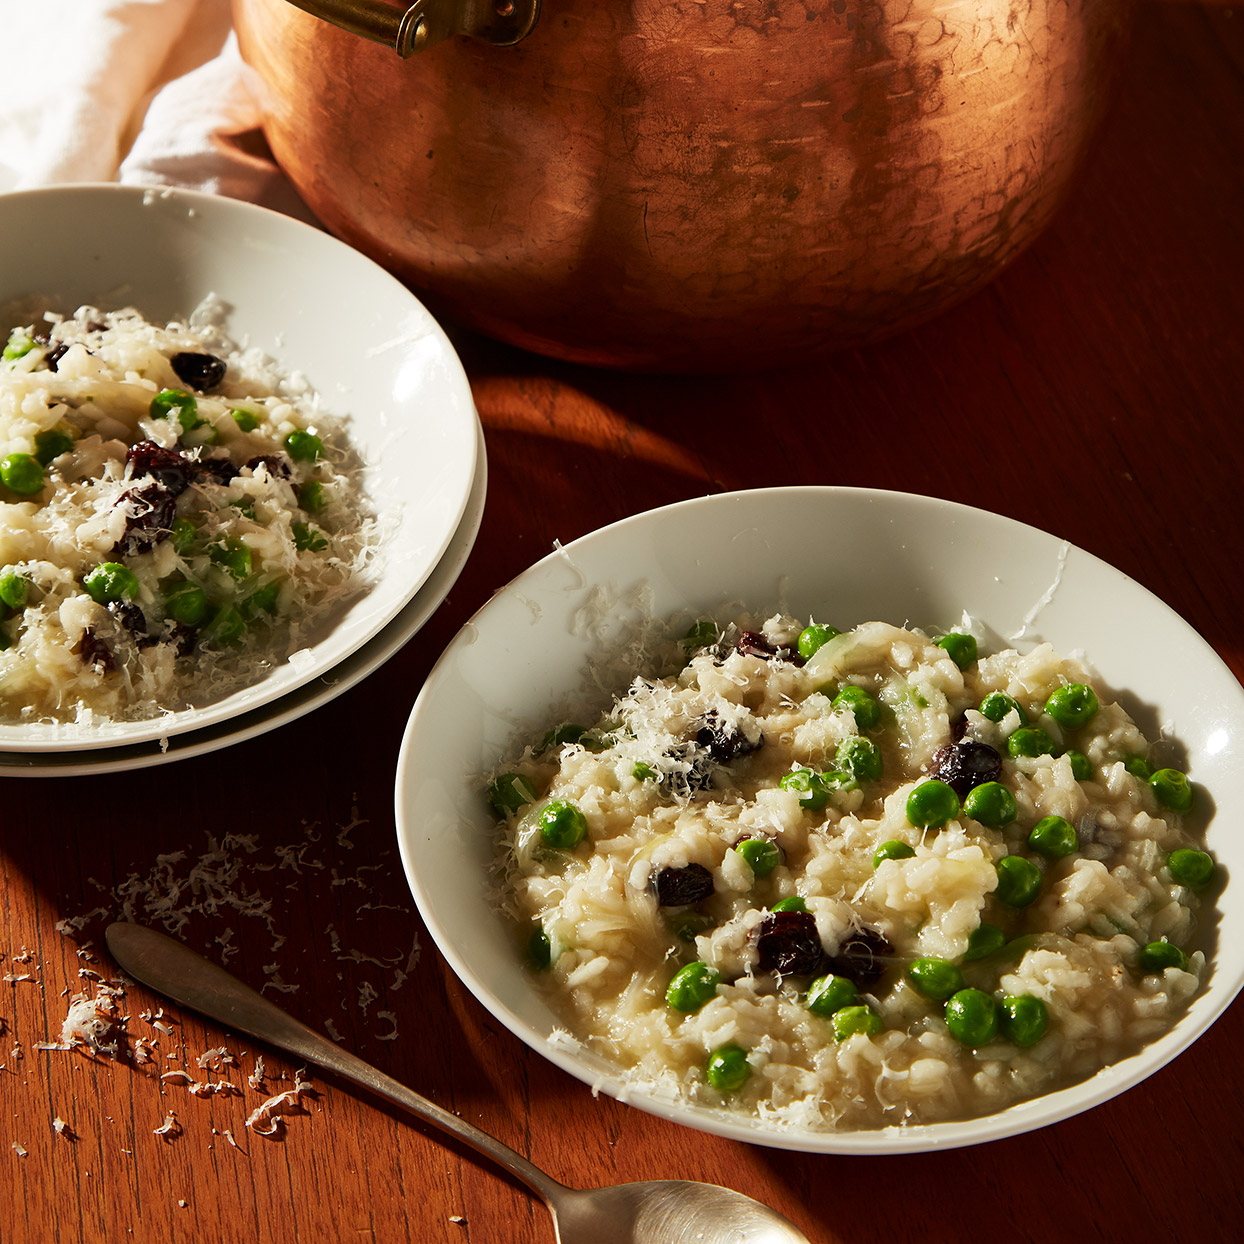 This risotto-like combo of rice and peas is made with a very cool technique that infuses the dish with one of the great tastes of spring. Source: EatingWell Magazine, March 2020